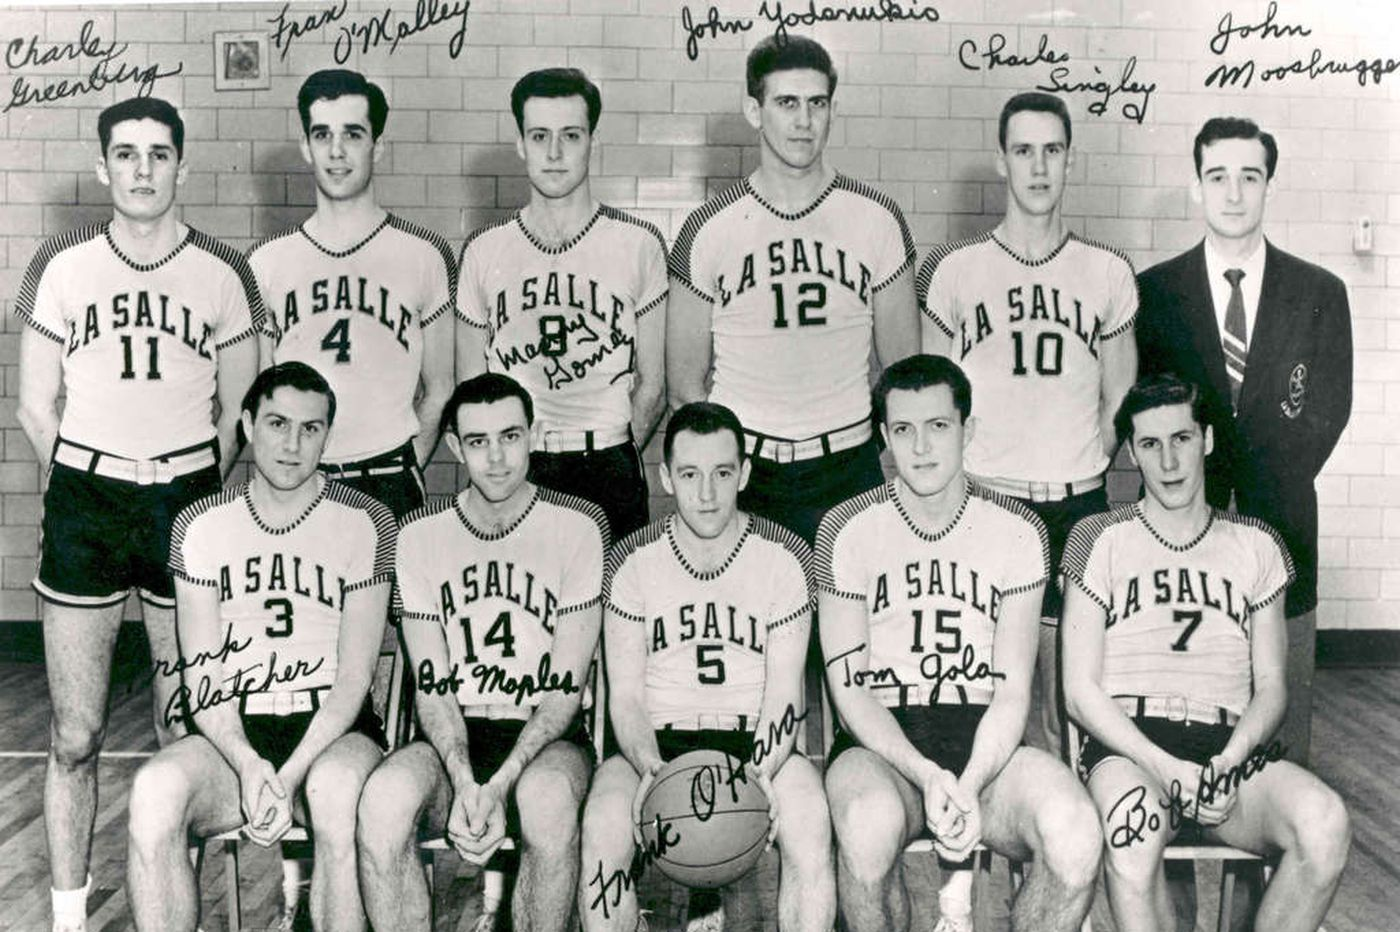 Frank S. Blatcher, a player on La Salle's 1954 NCAA basketball champions, dies at 90